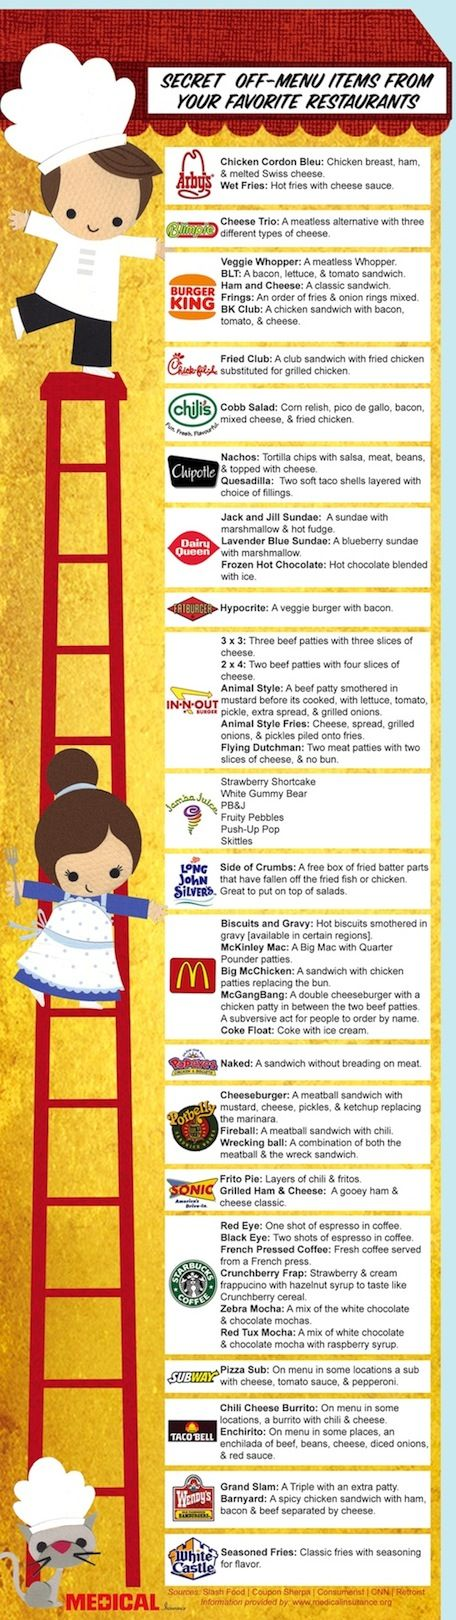 Secret Off-Menu Items From Your Favorite Restaurants [INFOGRAPHIC]